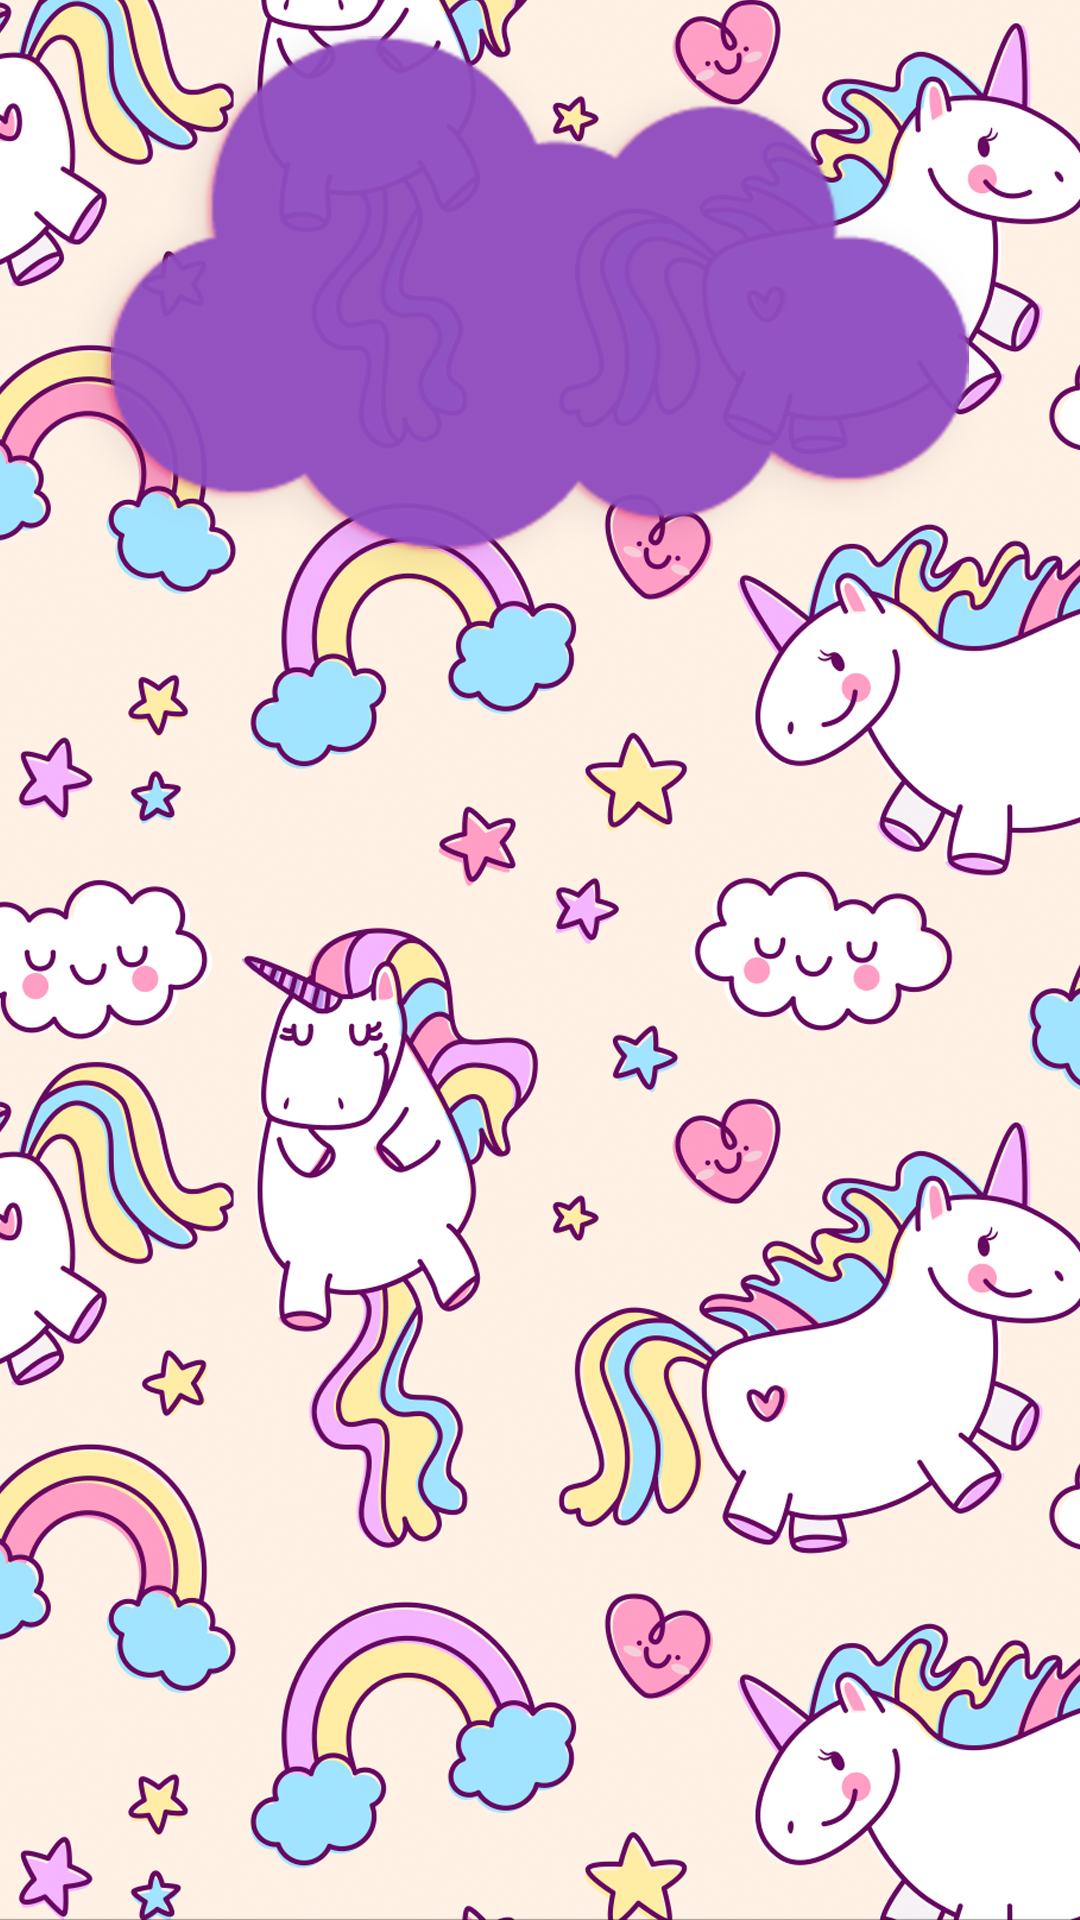 Free Hd Pink Unicorns Iphone Wallpaper For Download Lockscreen Unicorn 260561 Hd Wallpaper Backgrounds Download